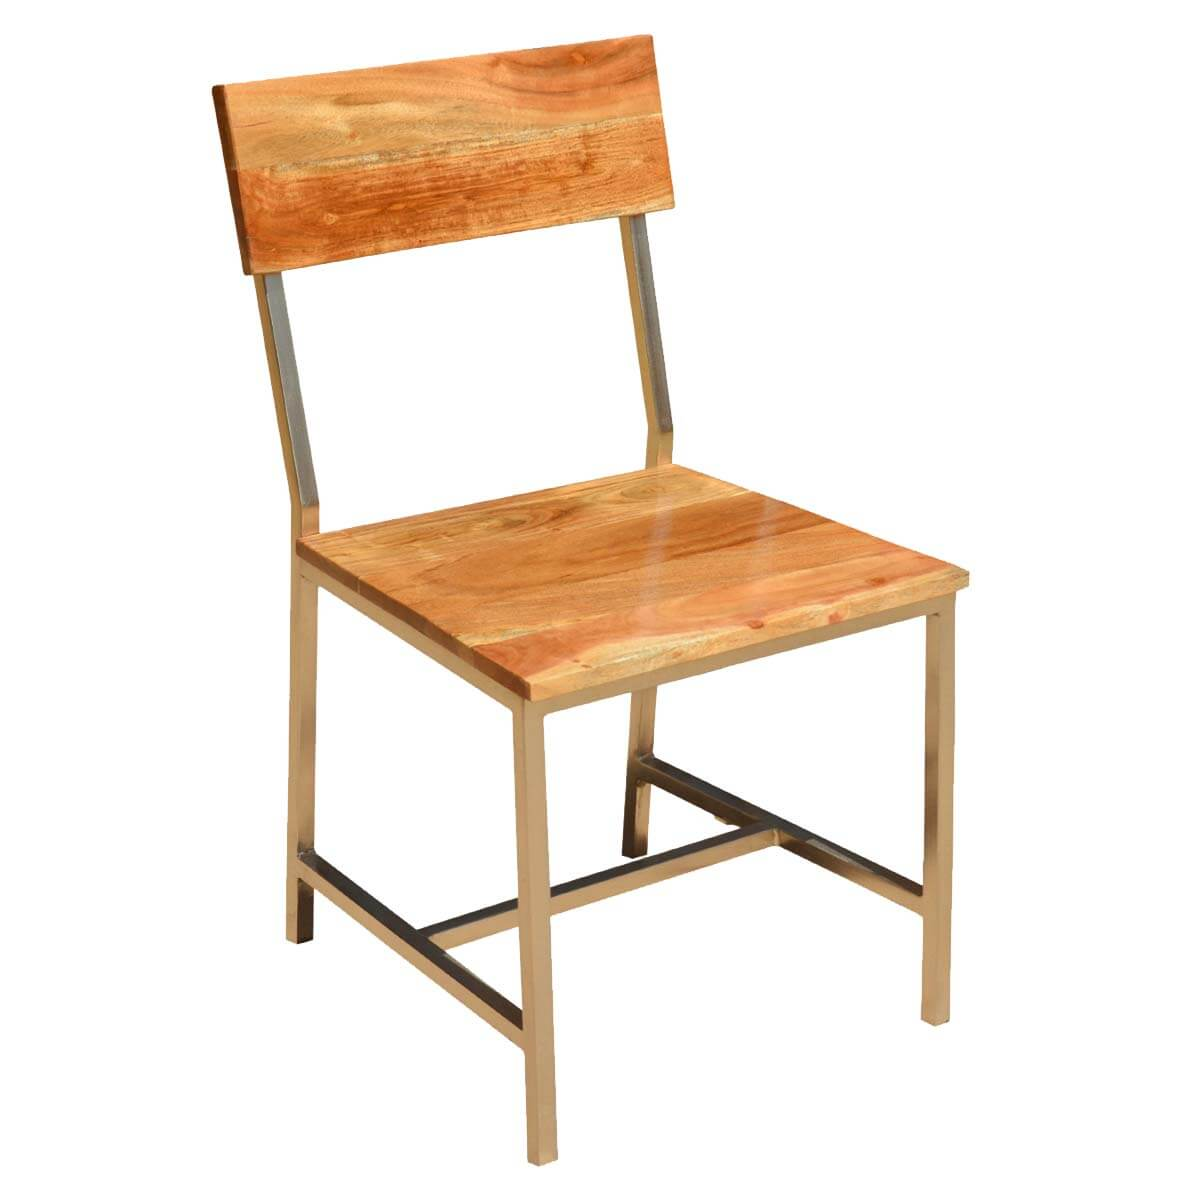 Rustic Modern Wood Dining Chair: Unique Live Edge Modern Rustic Dining Table & Chair Set W